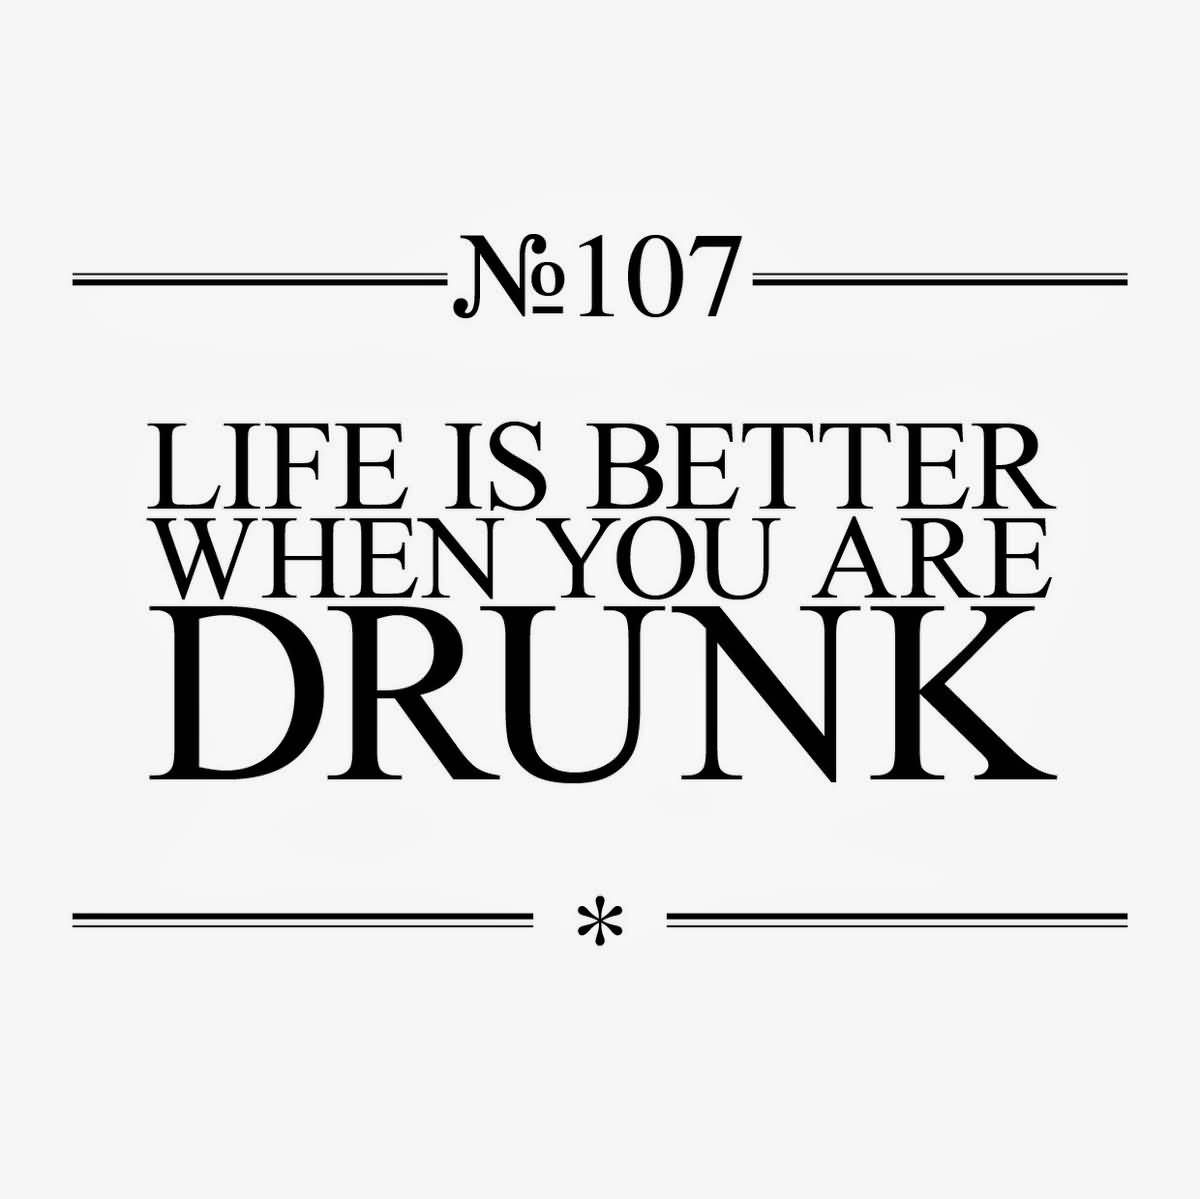 Alcoholism Quotes 30 Popular Alcohol Love Quotes Sayings Pictures & Photos  Picsmine